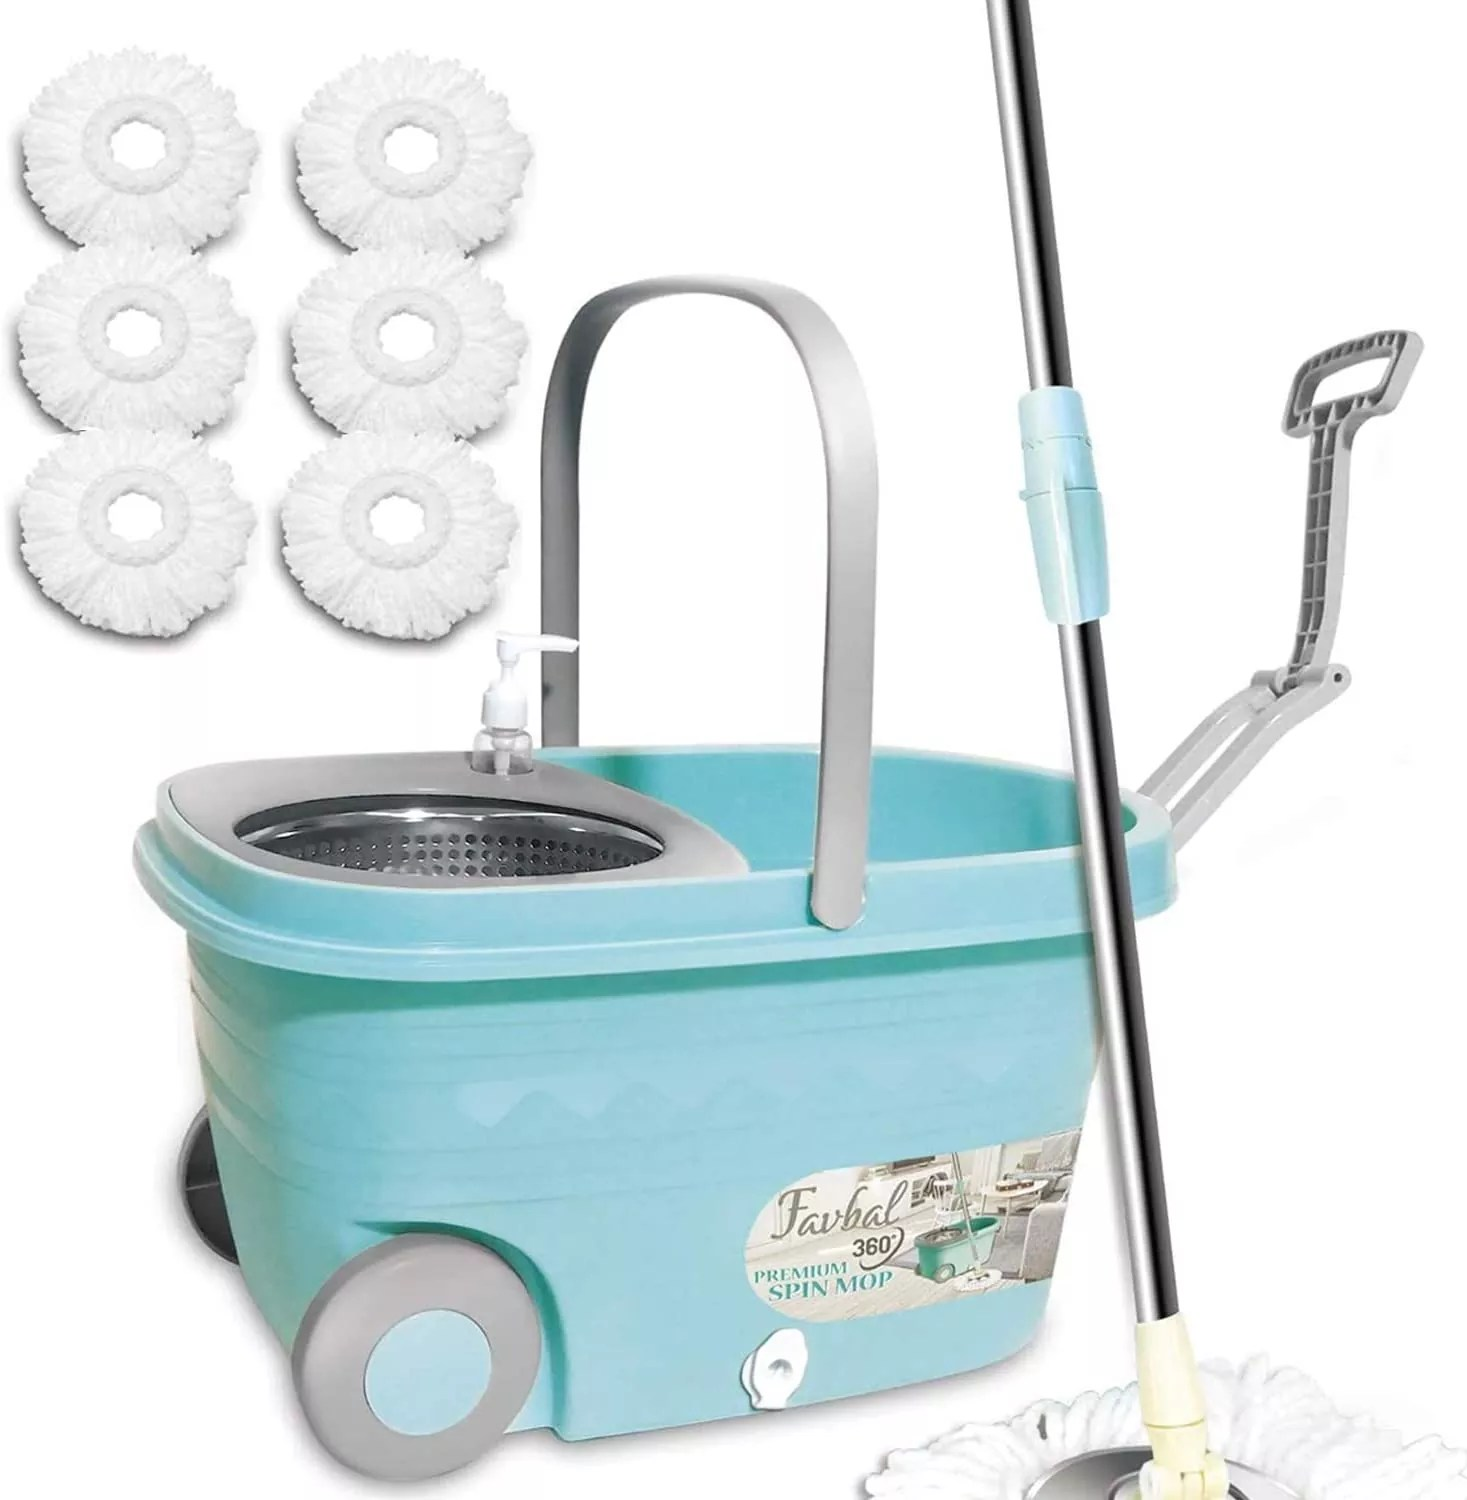 Favbal Stainless Steel Spinning Mop and Bucket with Wringer Home Cleaning Kit